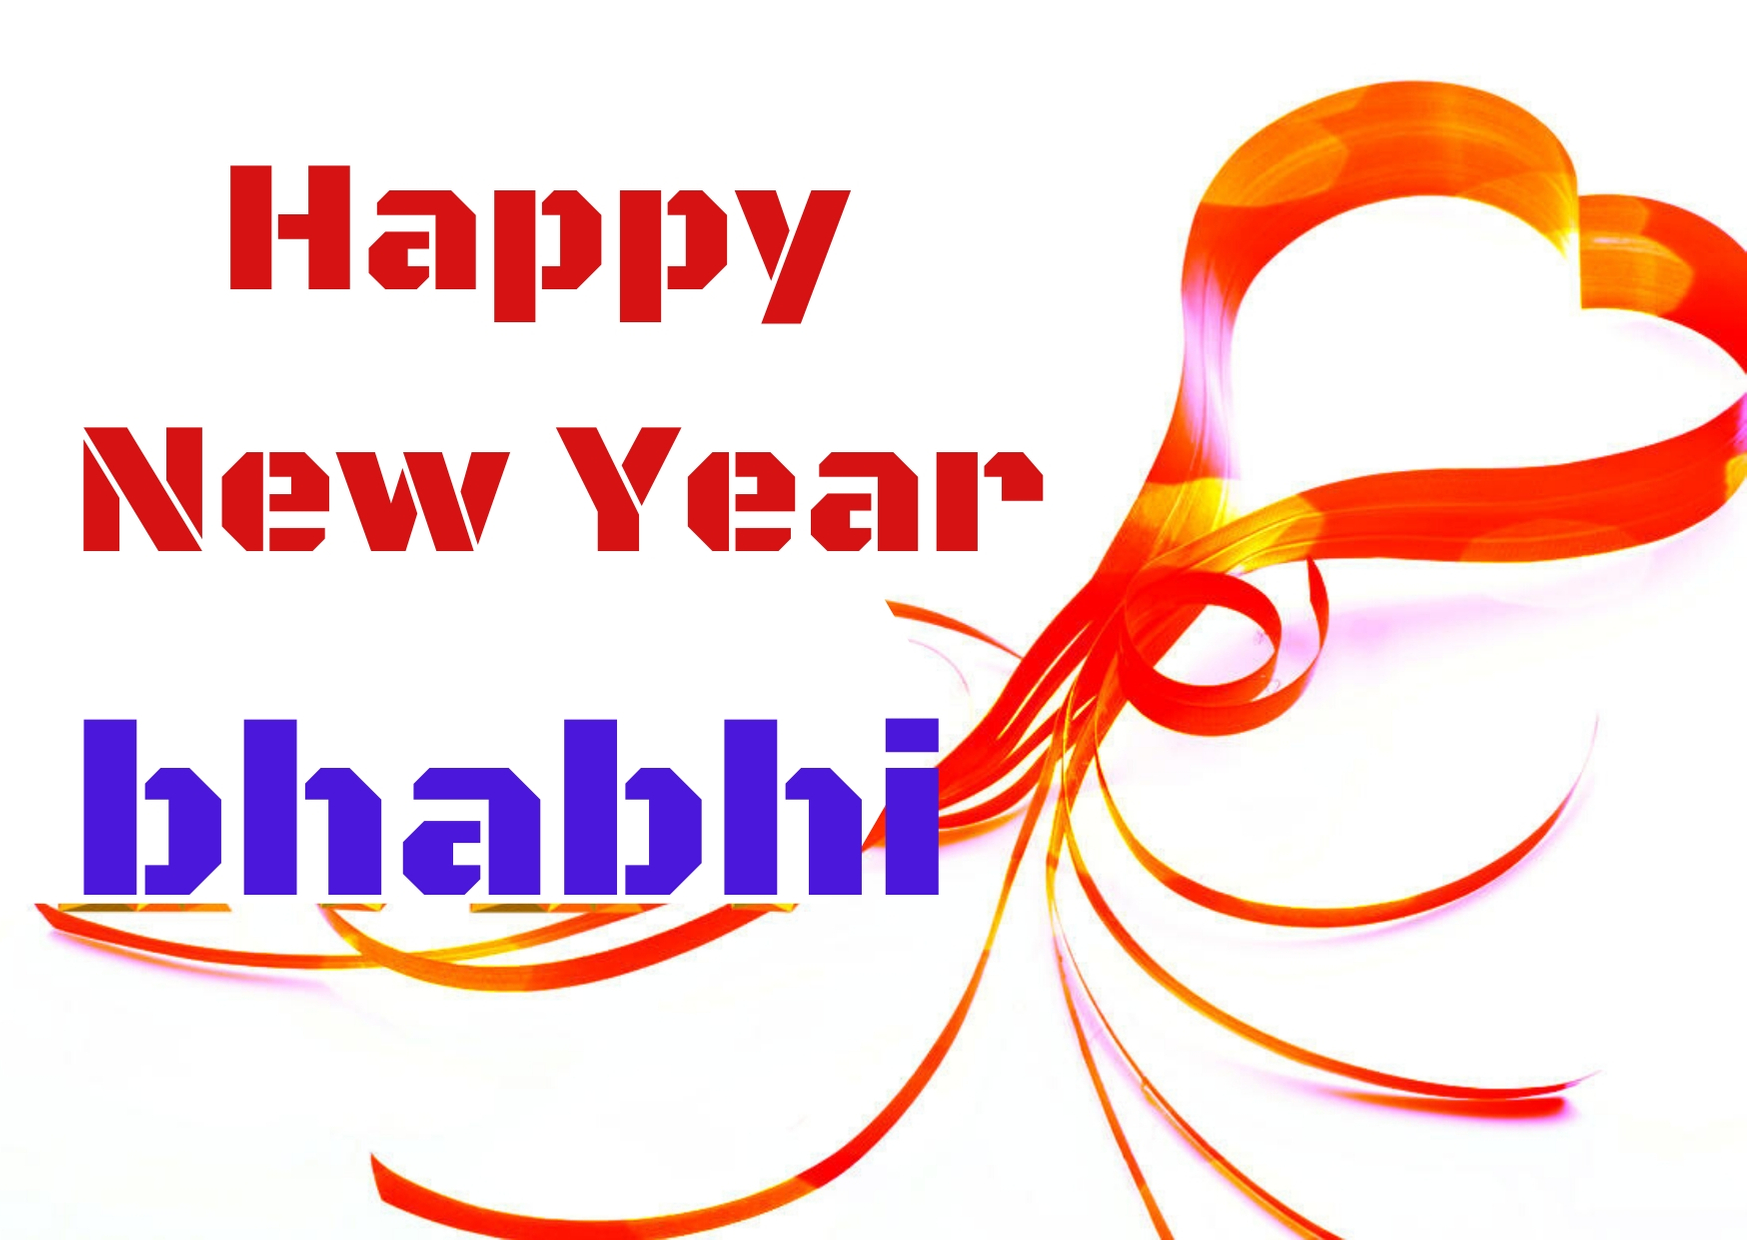 Happy New Year 2021 Wishes For  Bhabhi